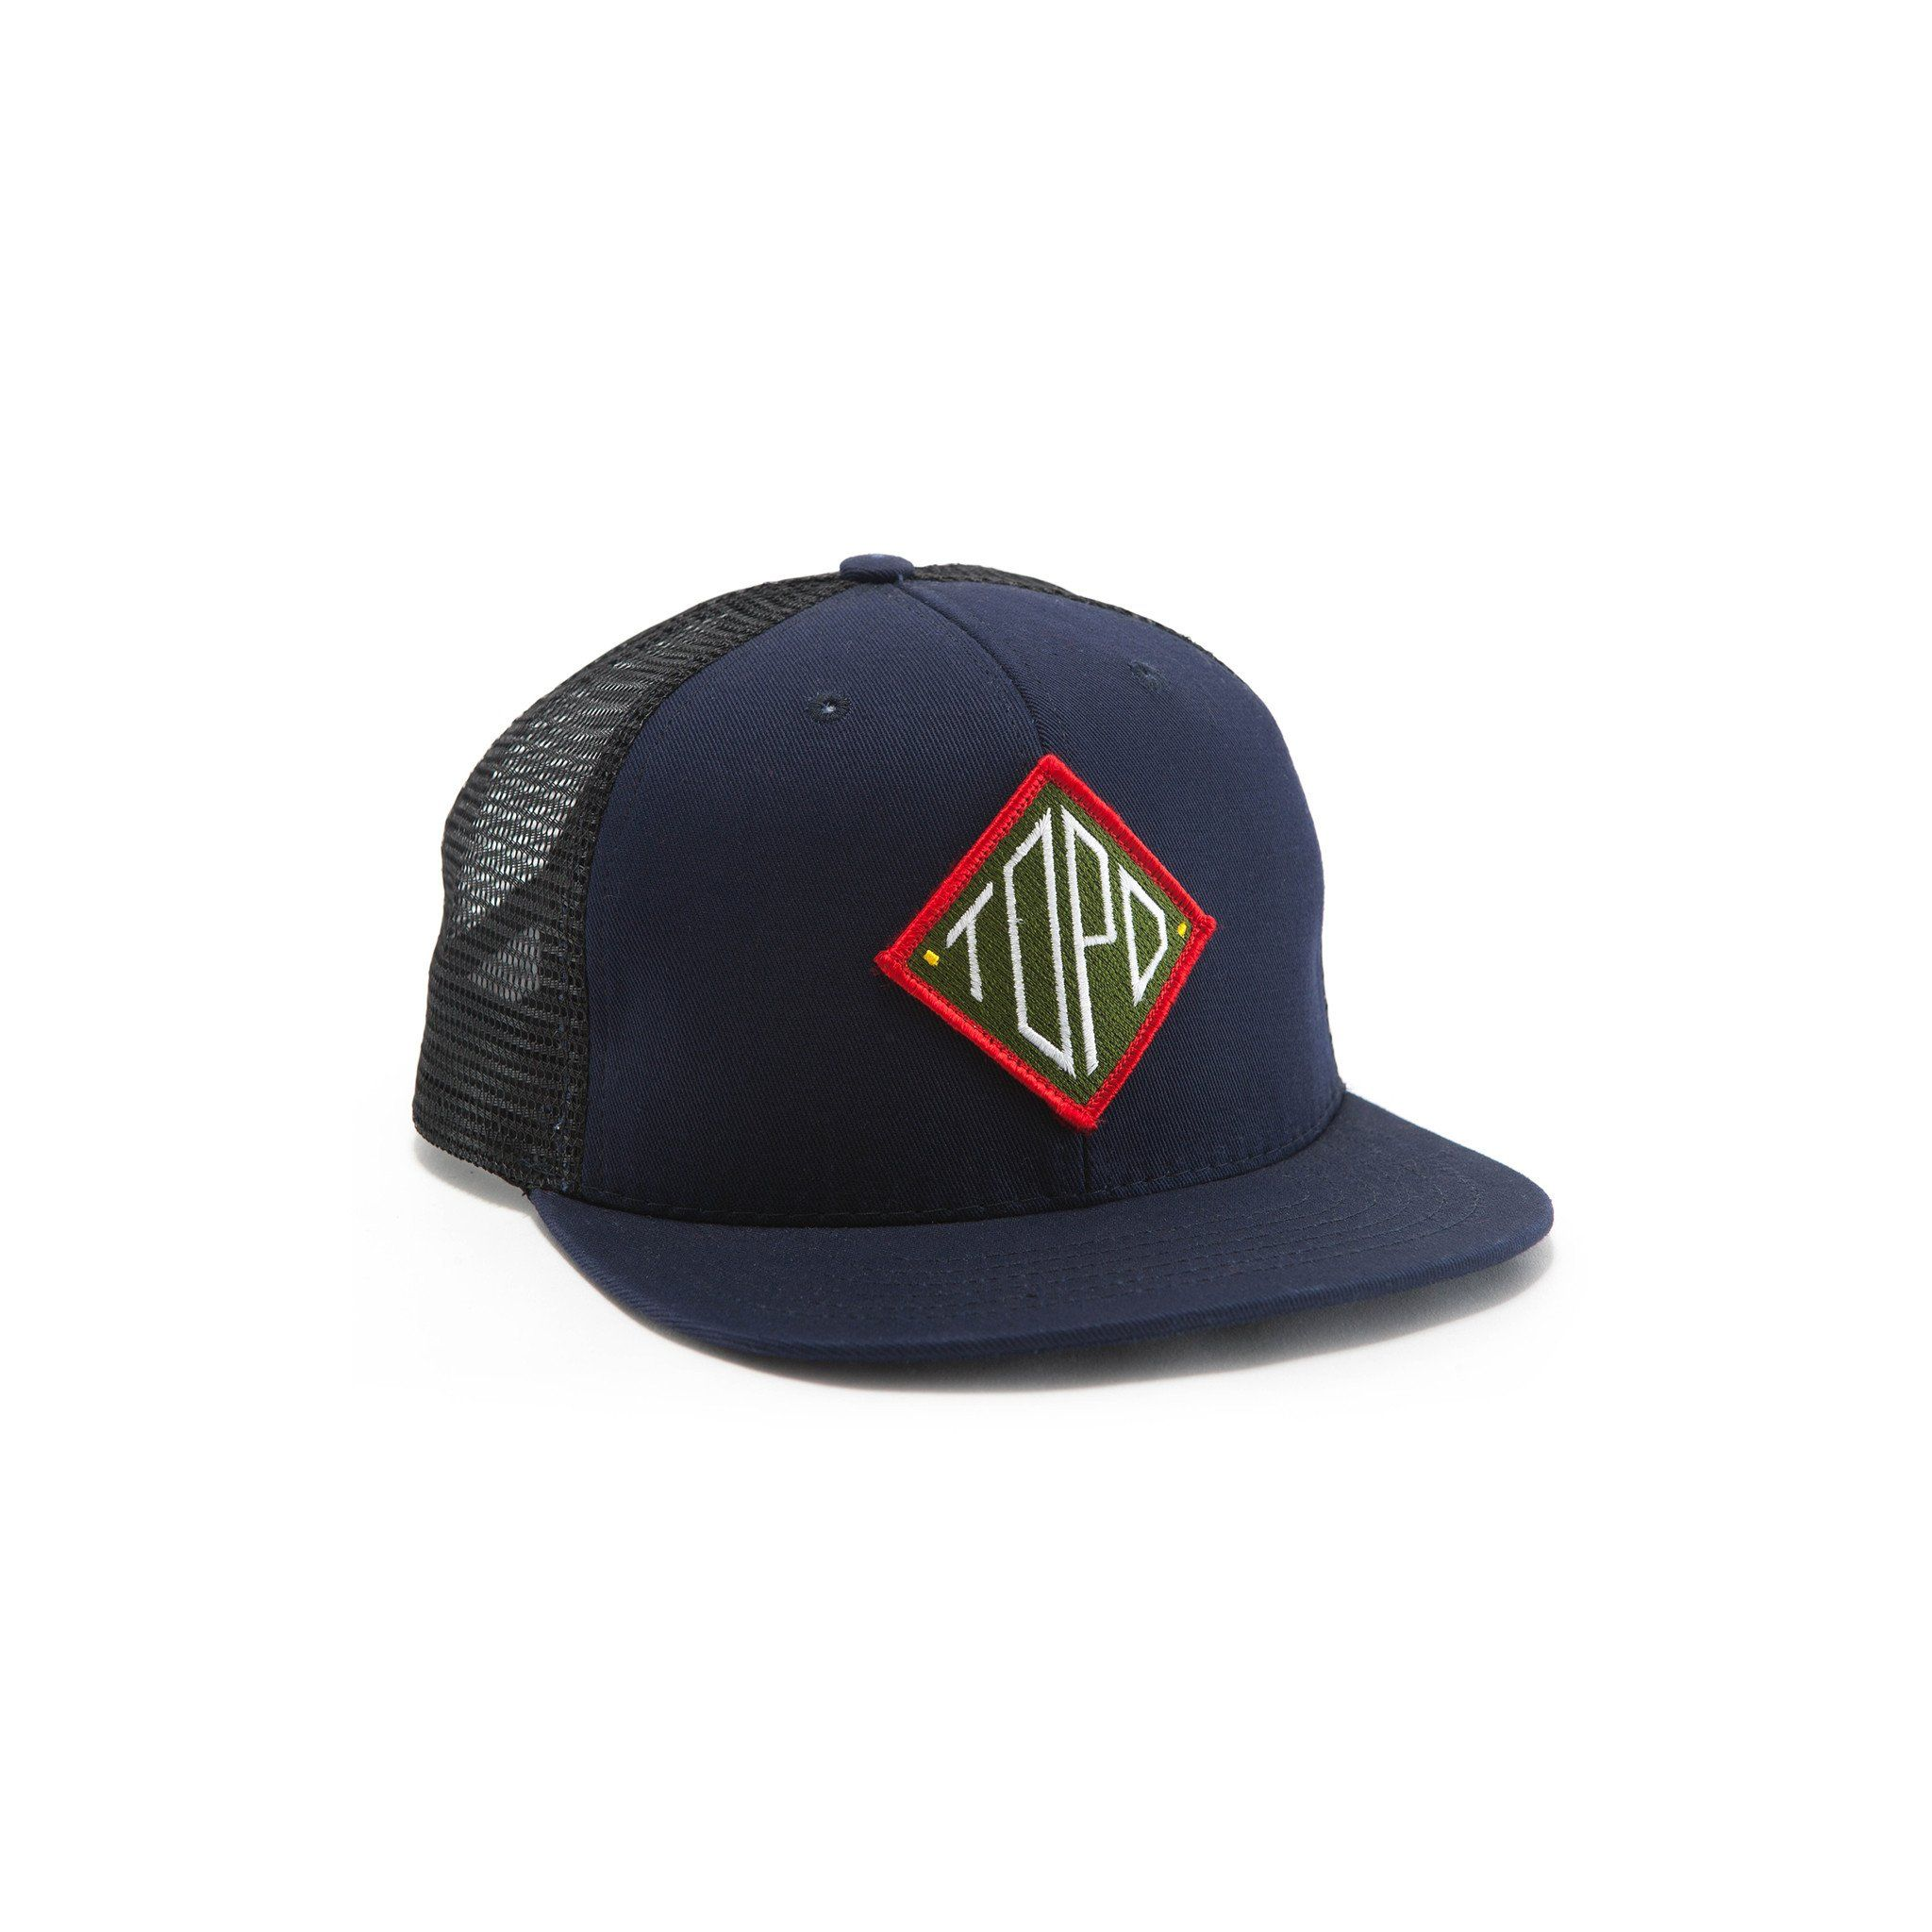 72e3e30100f Our Snapback Hat reimagined. The Topo Designs Diamond Snapback Hat uses our  popular diamond patch on a two-tone